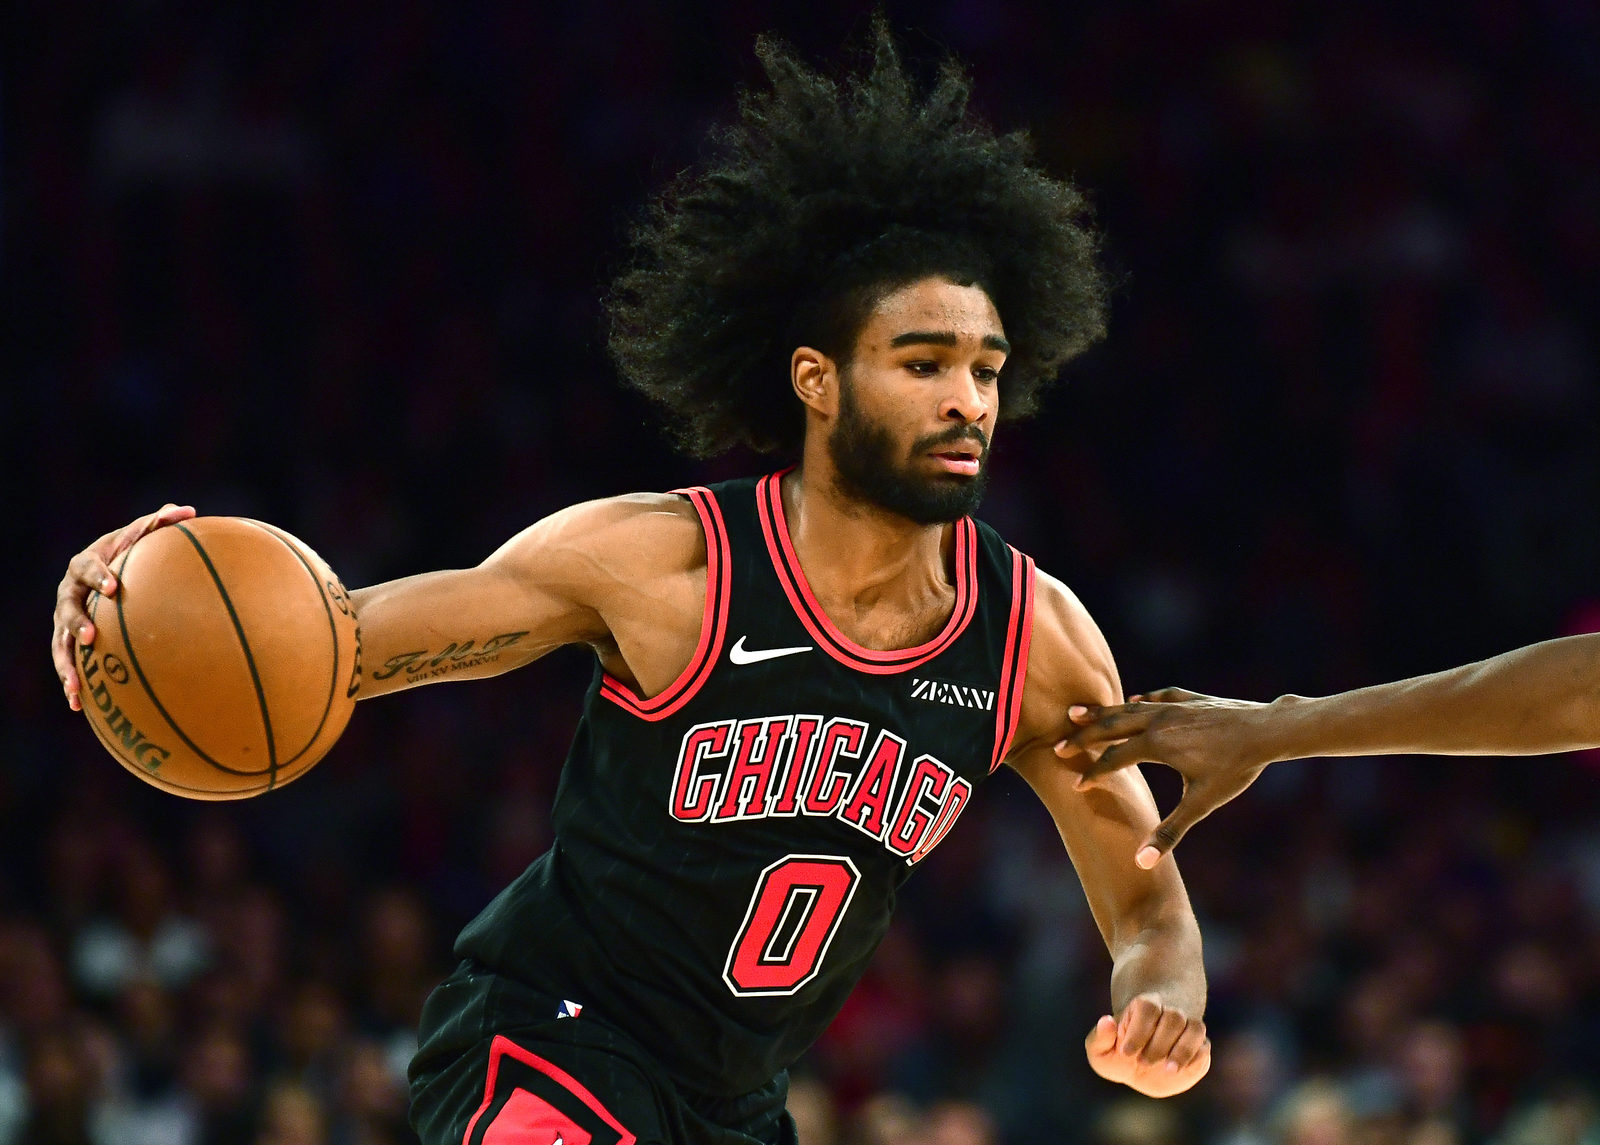 Coby White #0 of the Chicago Bulls drives in the second half of their game against the New York Knicks at Madison Square Garden on October 28, 2019 in New York City.